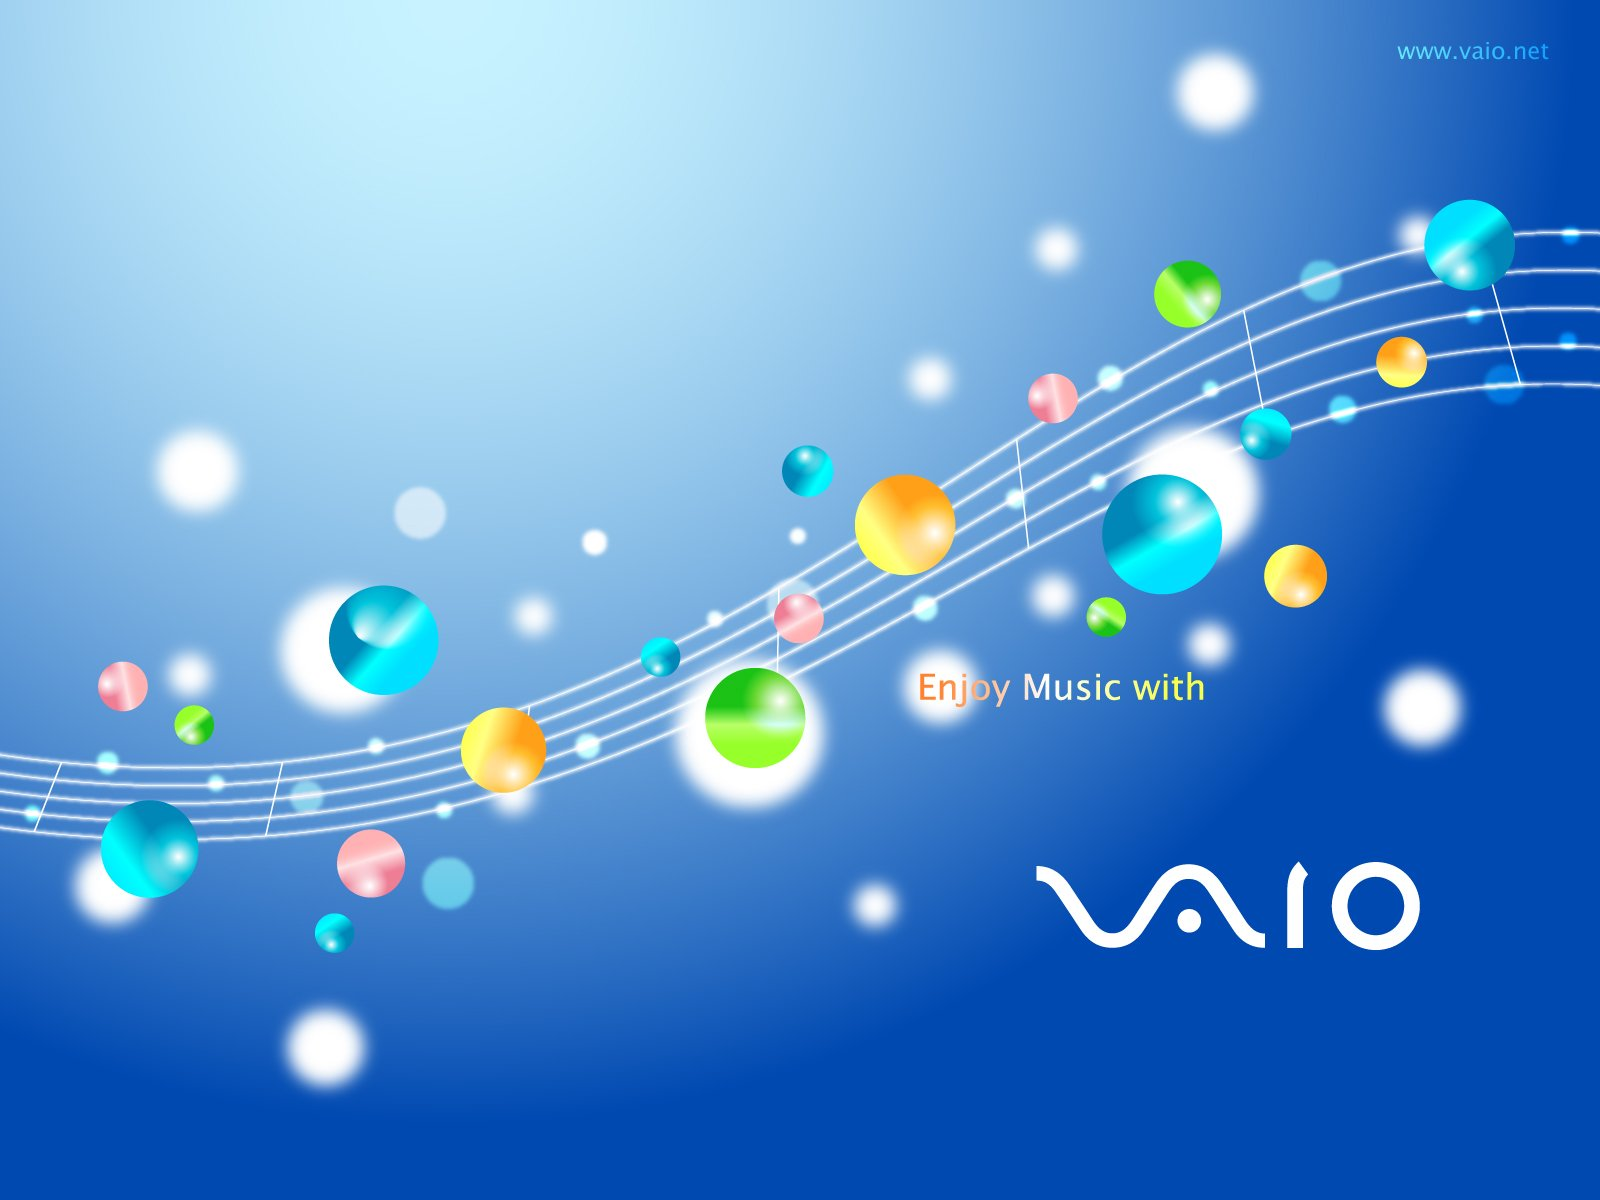 Sony Vaio Laptop Wallpapers - Top Free